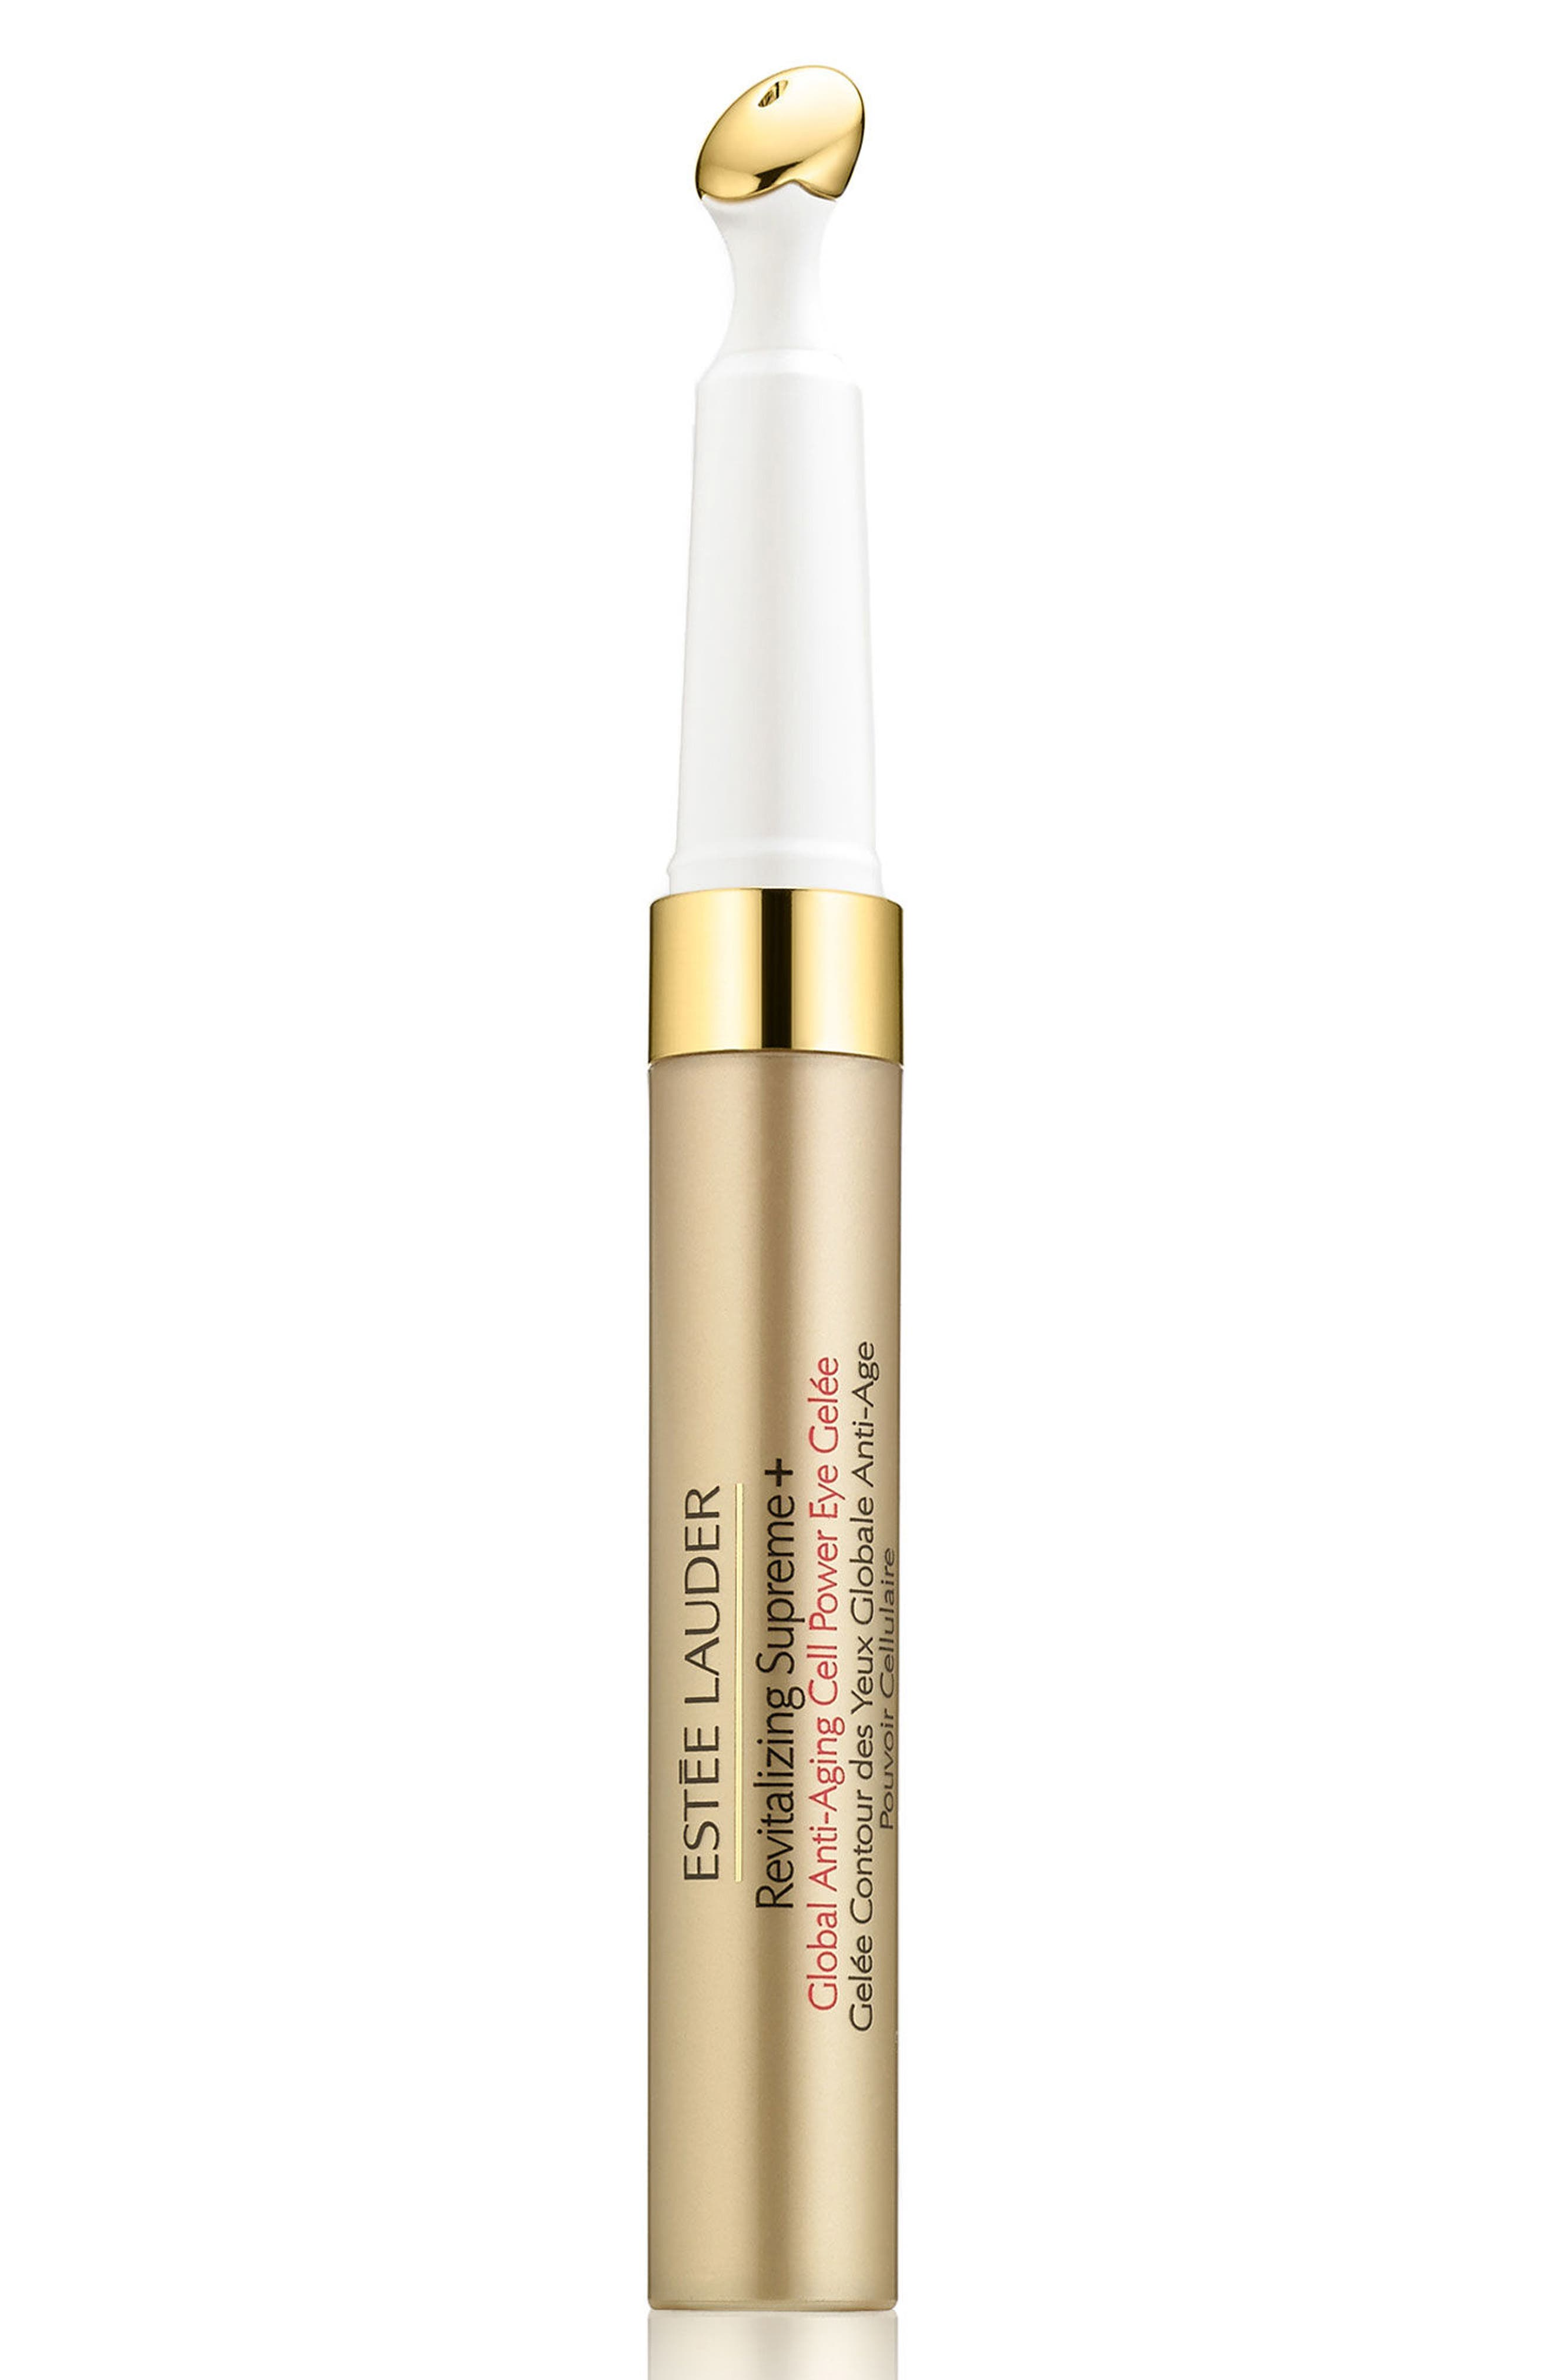 Estée Lauder Revitalizing Supreme+ Global Anti-Aging Cell Power Eye Gelée